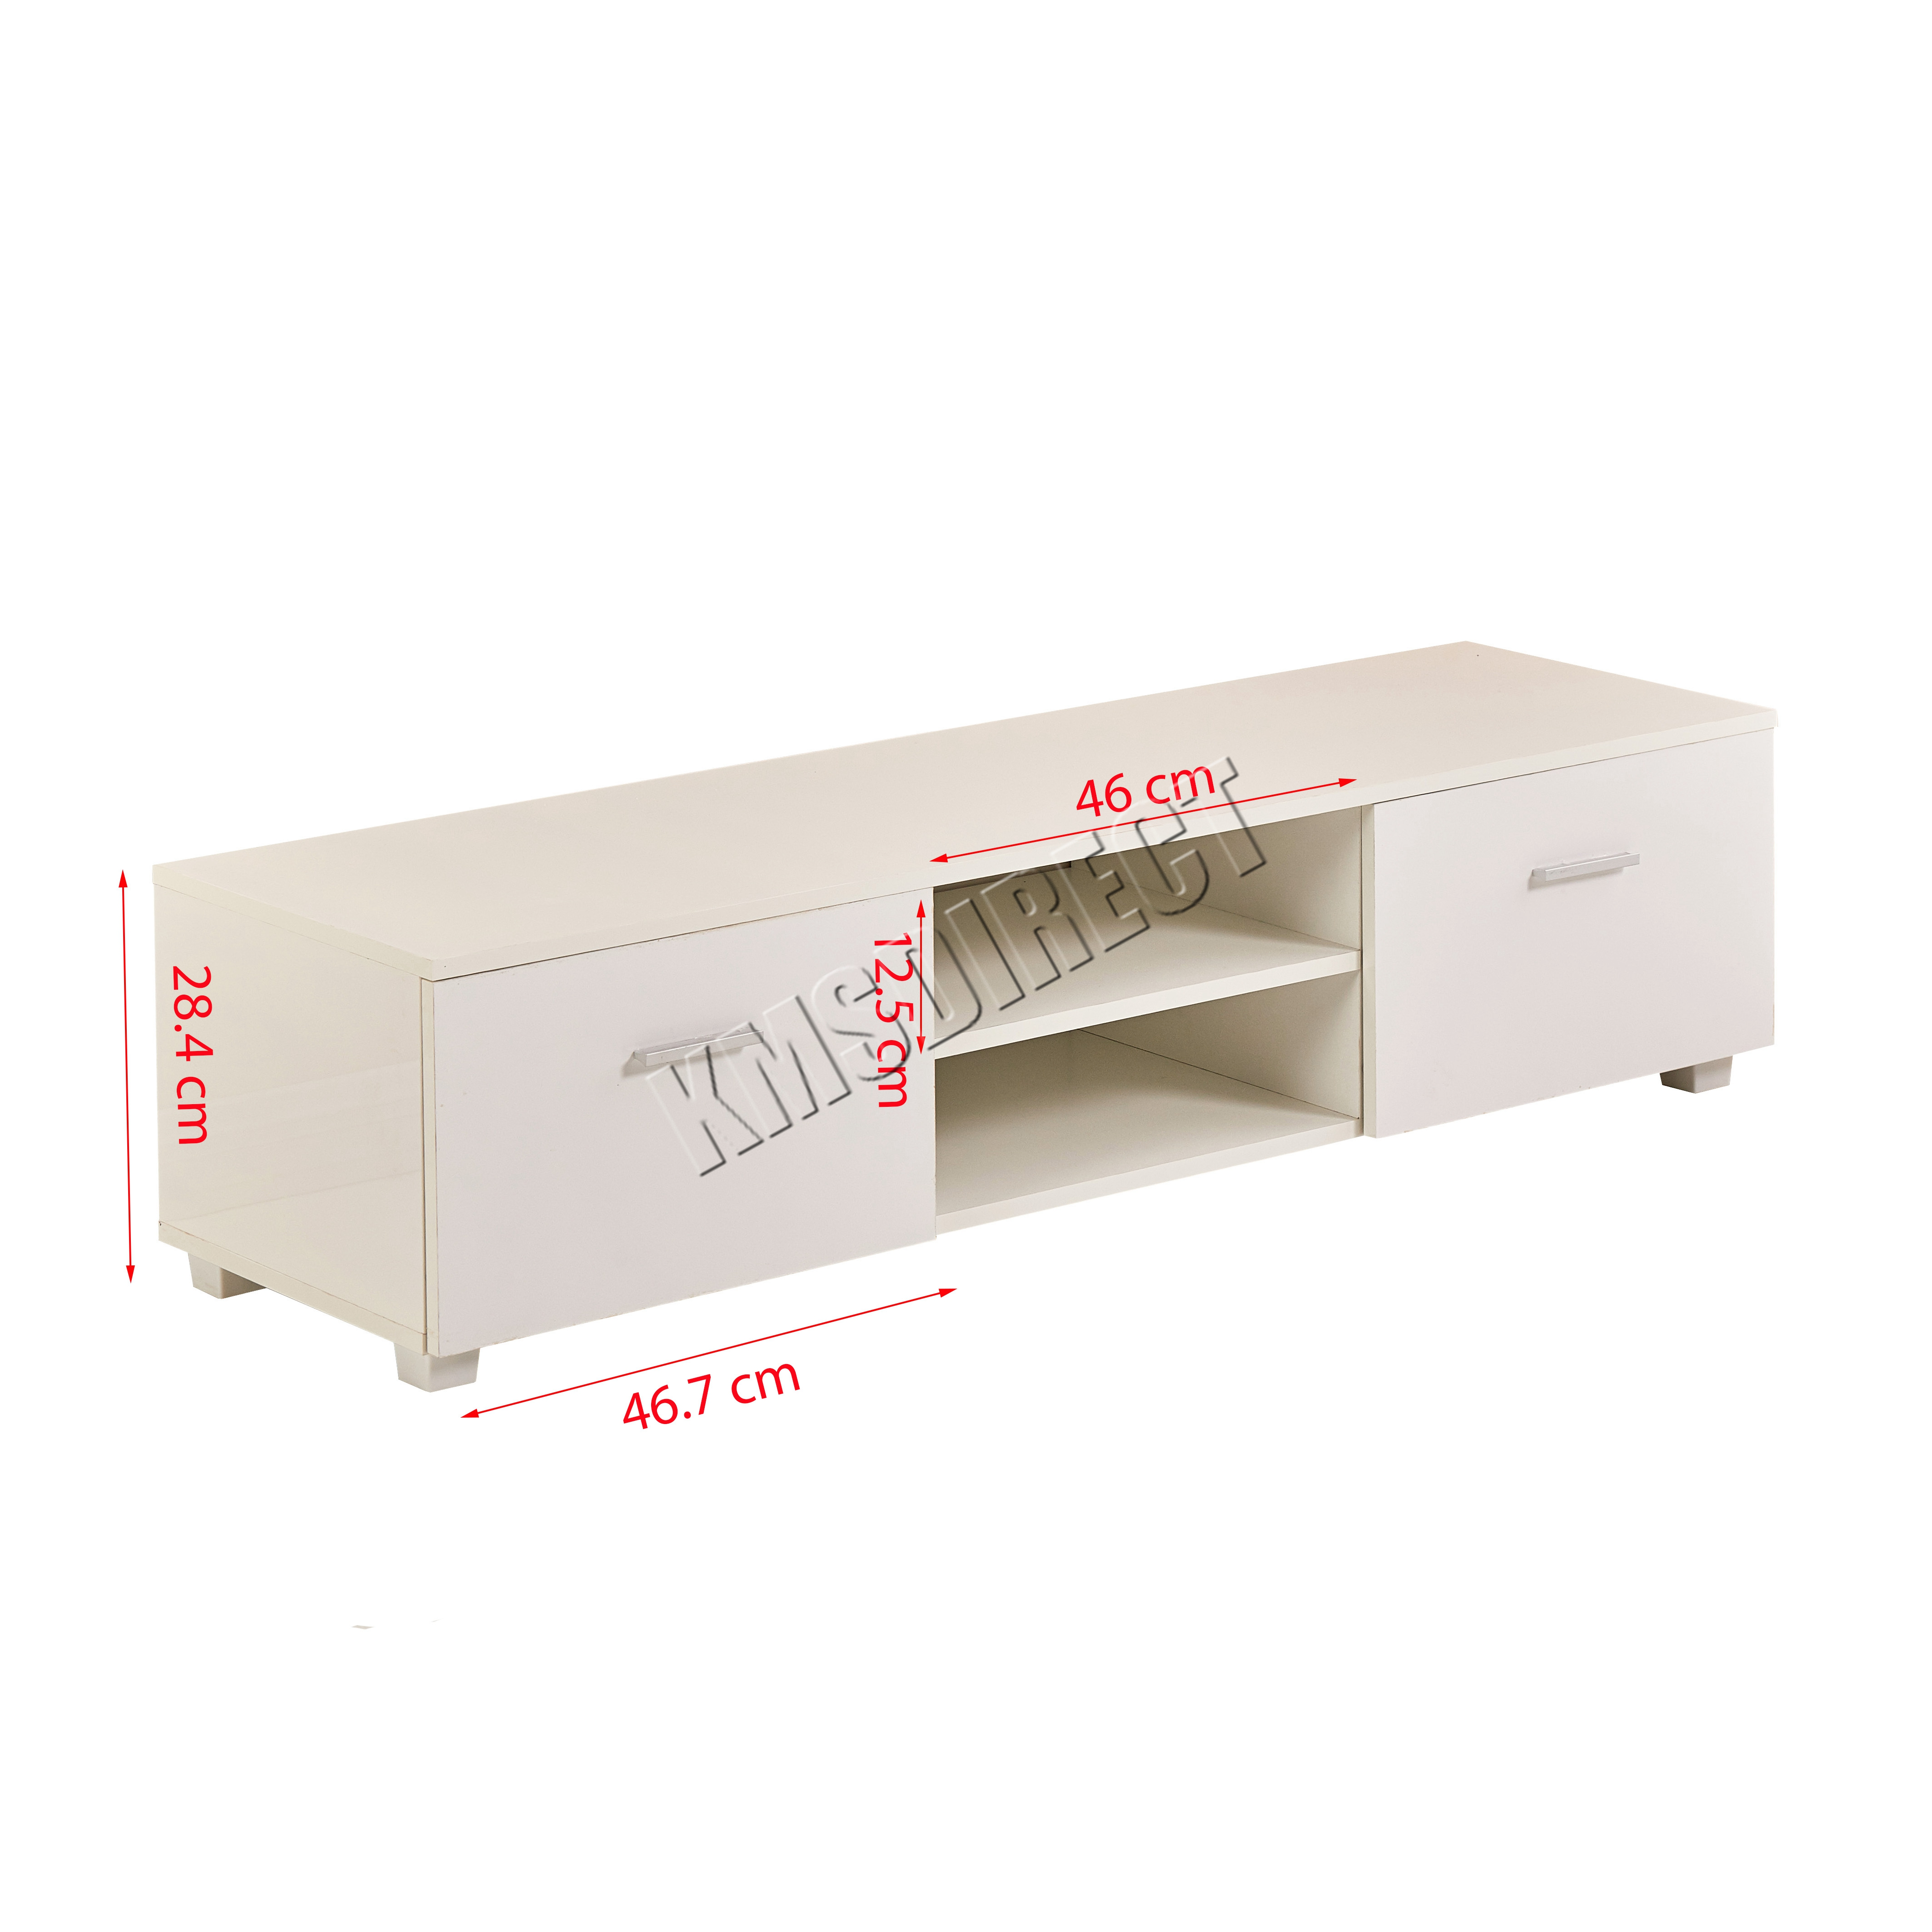 Foxhunter High Gloss Mdf Tv Cabinet Unit Stand White Home  # Meuble Tv Curved